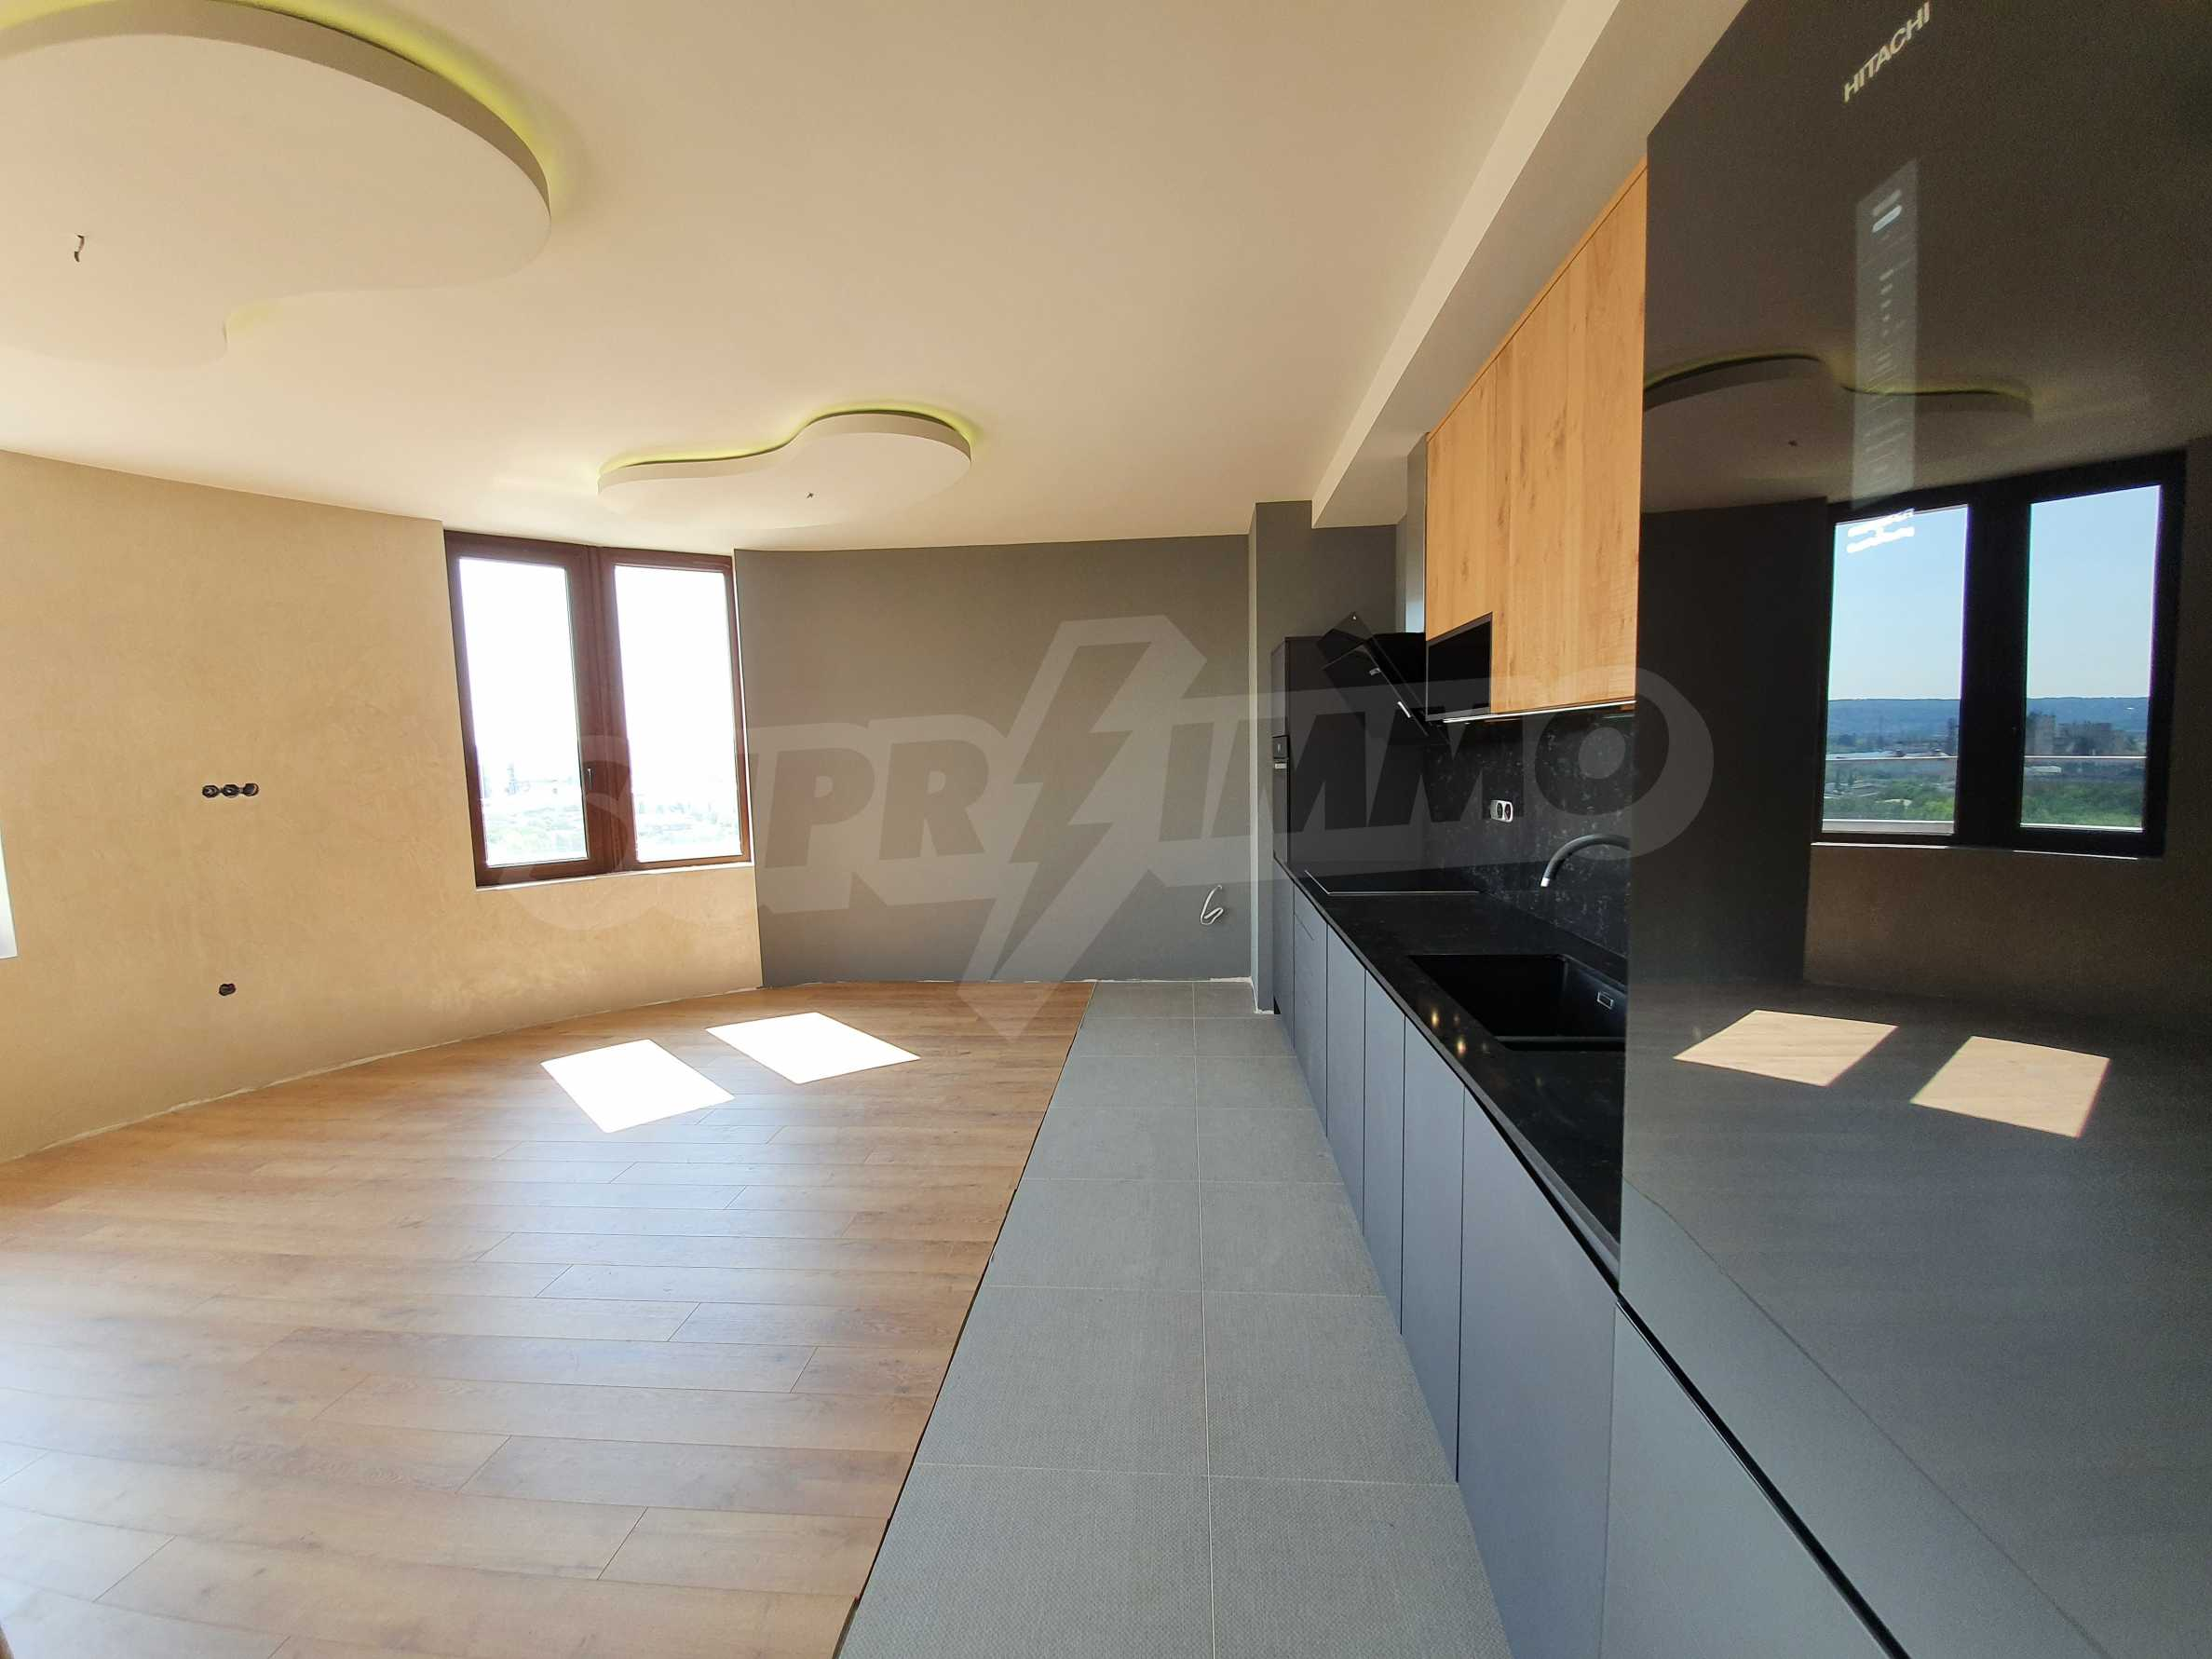 Panoramic two-bedroom apartment with views of the lake and Varna 3